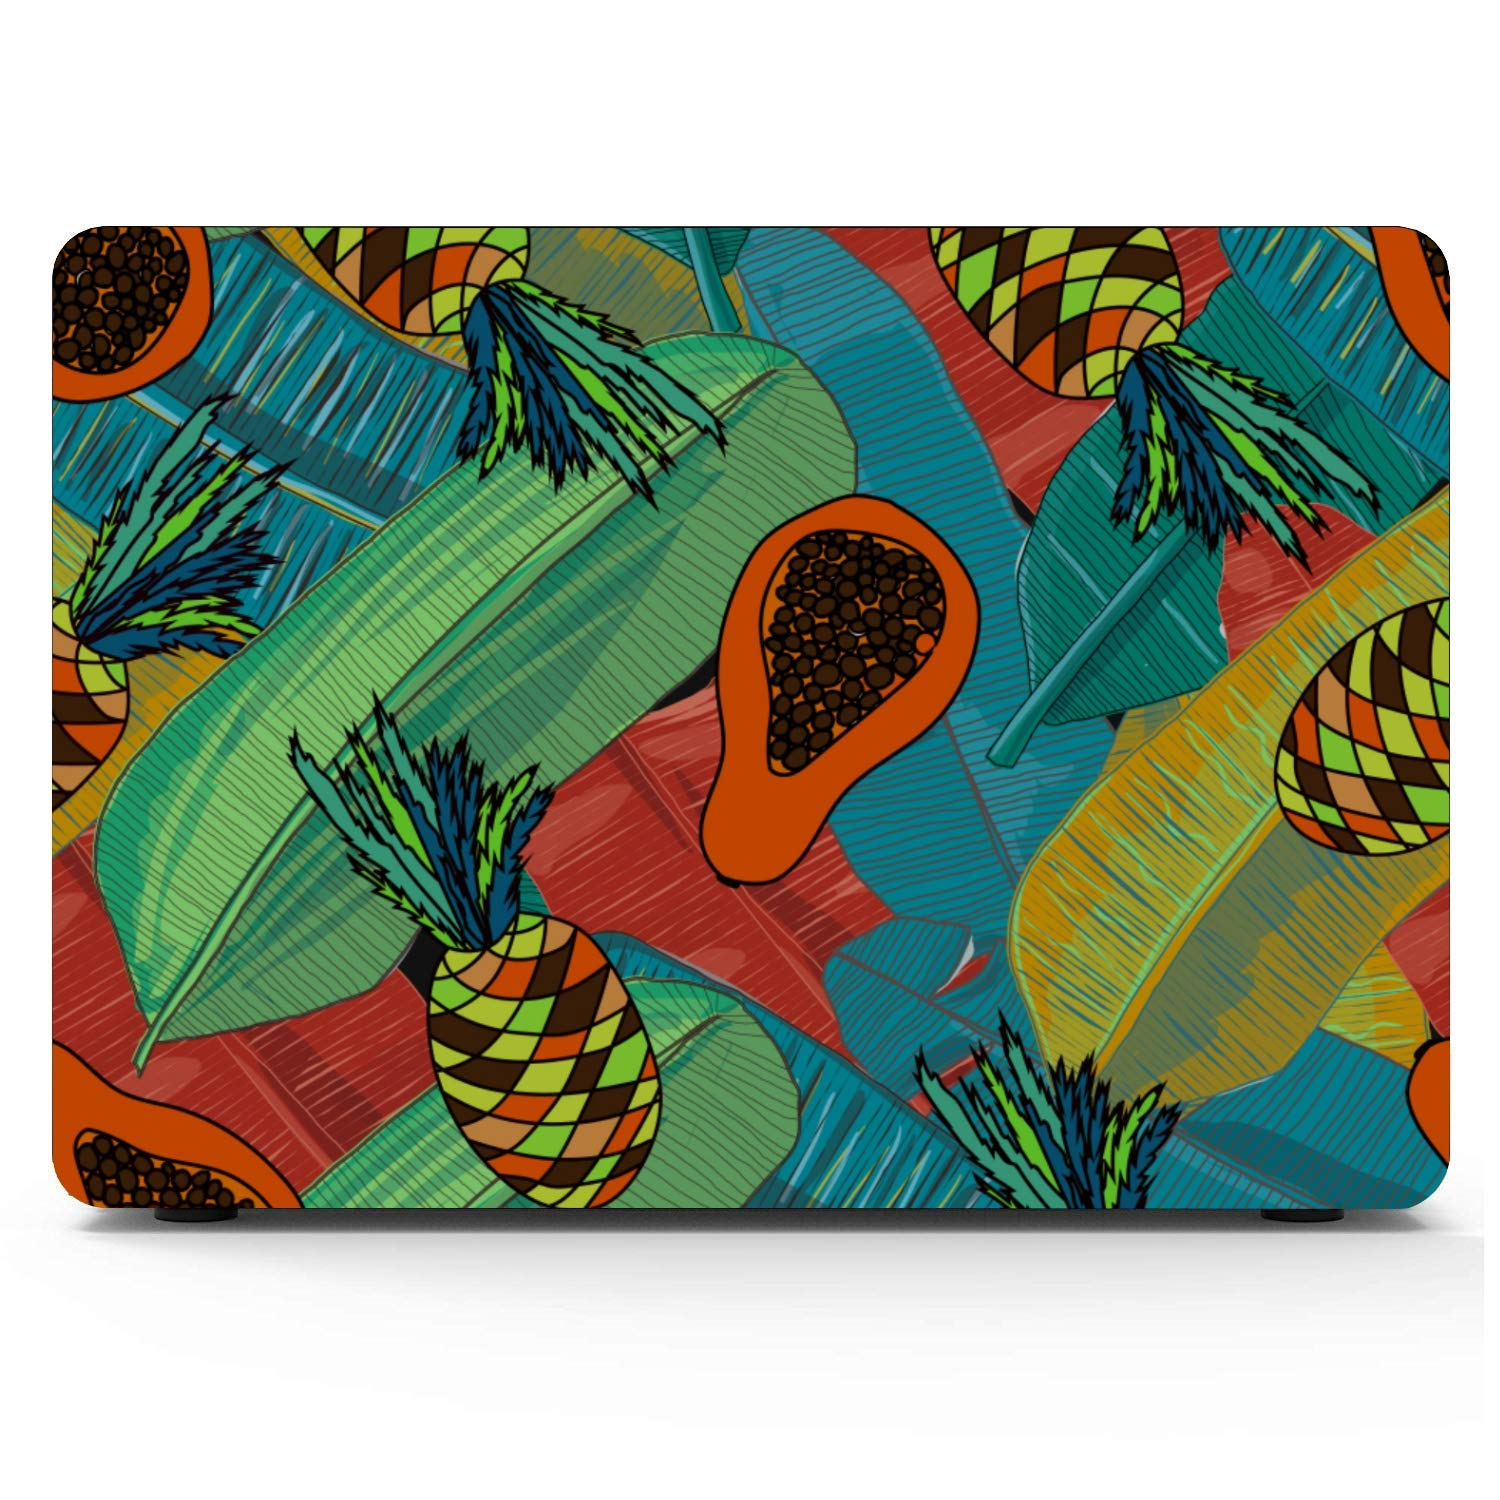 MacBook Pro Case 2015 Summer Fashion Cool Fruit Papaya Plastic Hard Shell Compatible Mac Air 11 Pro 13 15 A1466 Case Protection for MacBook 2016-2019 Version